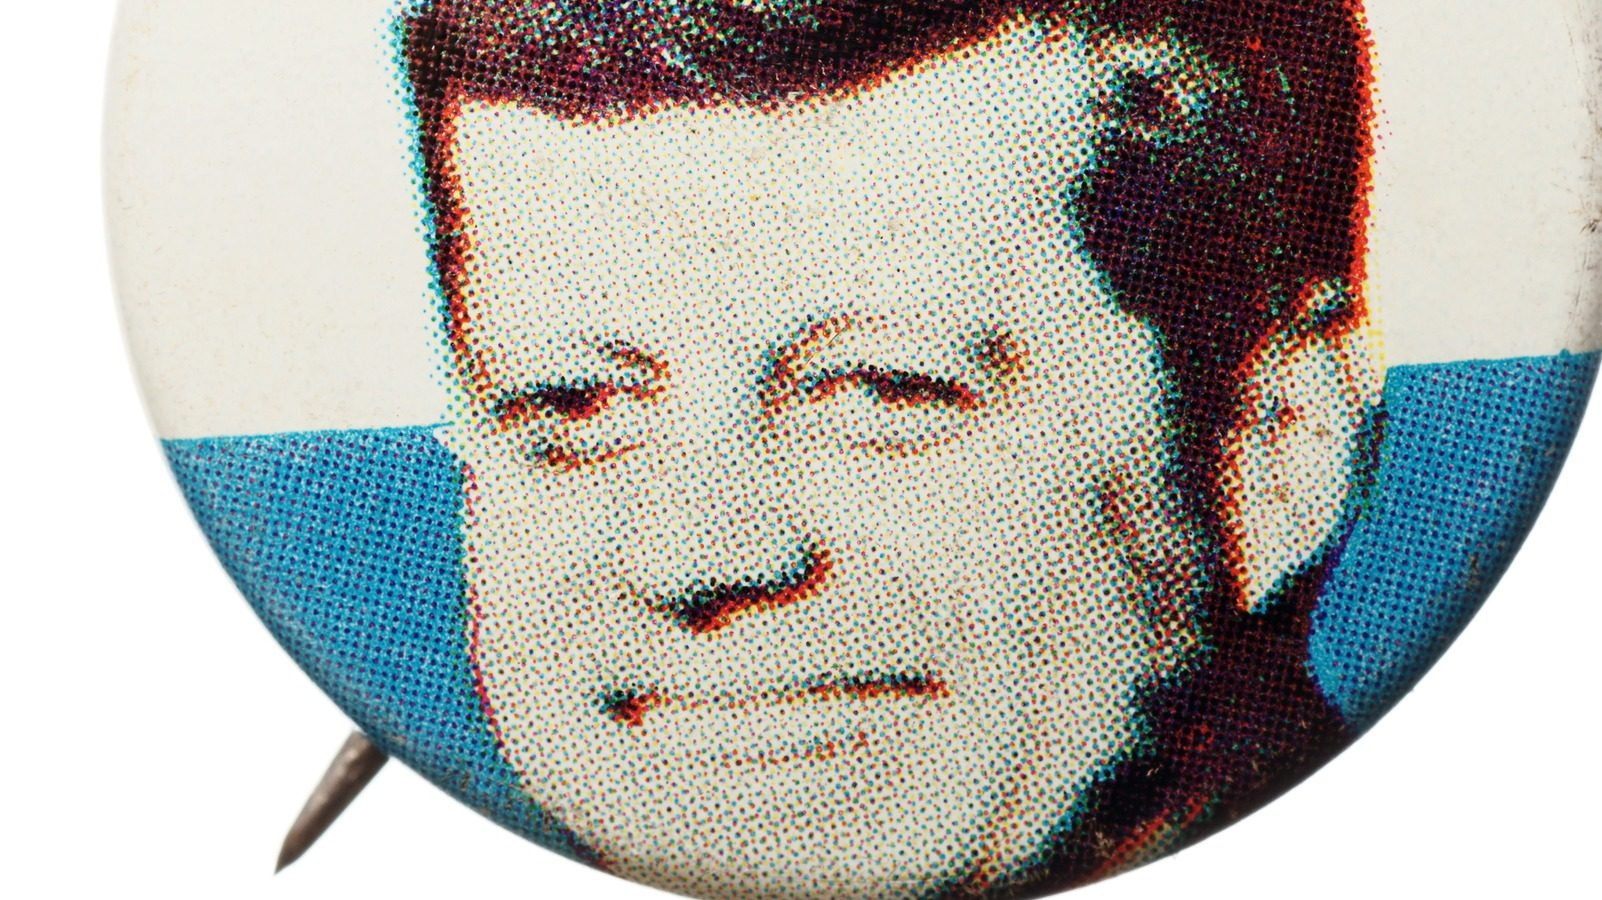 Will Proof of the JFK Conspiracy Finally Be Revealed?